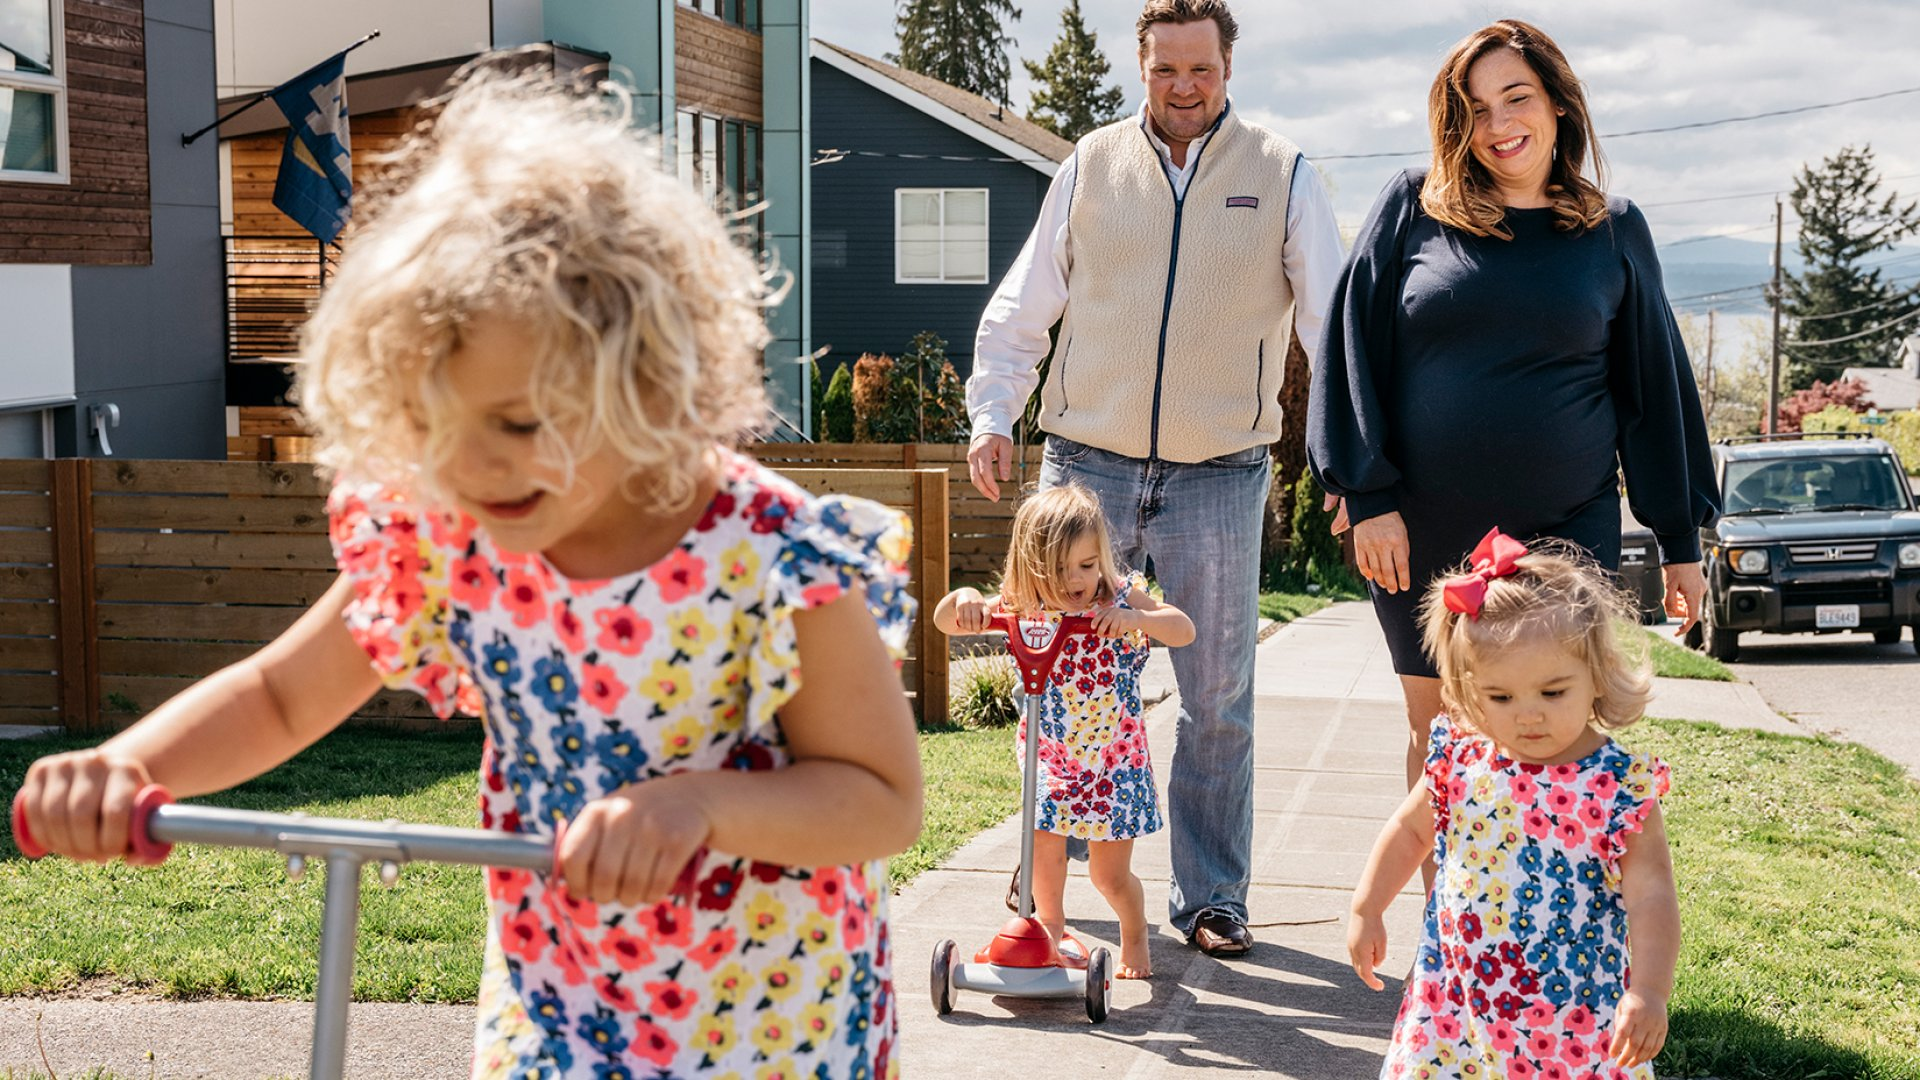 """The fact that I started this company when I was pregnant means that physically, I will be able to do anything,"" the Riveter's Amy Nelson told one skeptical VC. She lives in Seattle with her husband and three (soon to be four) daughters."